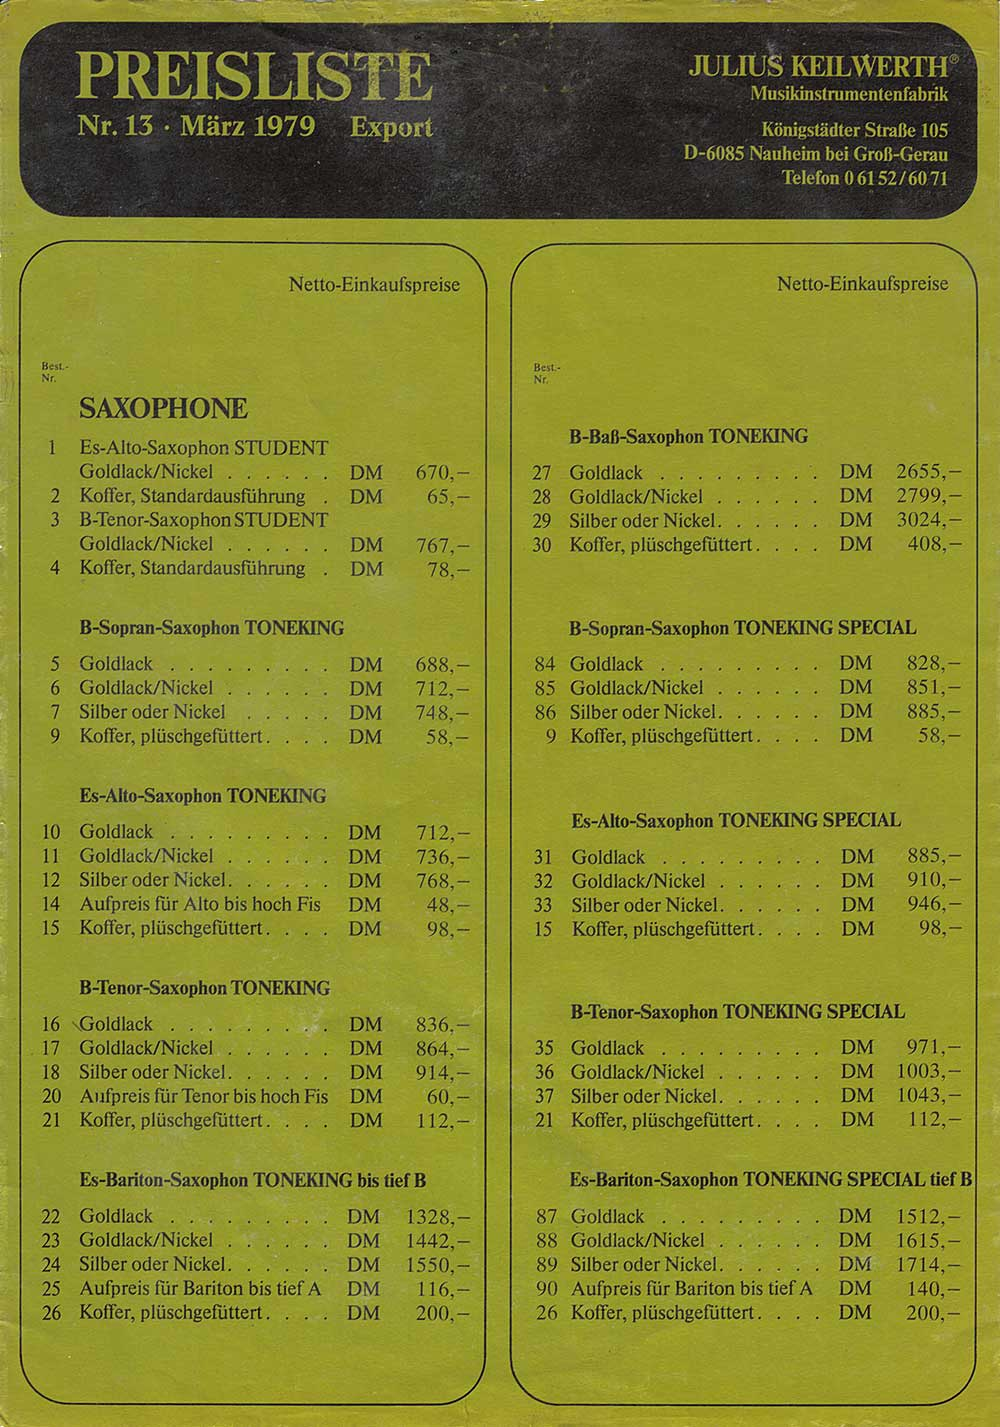 Julius Keilwerth, saxophones, sax price list, 1979, vintage, German